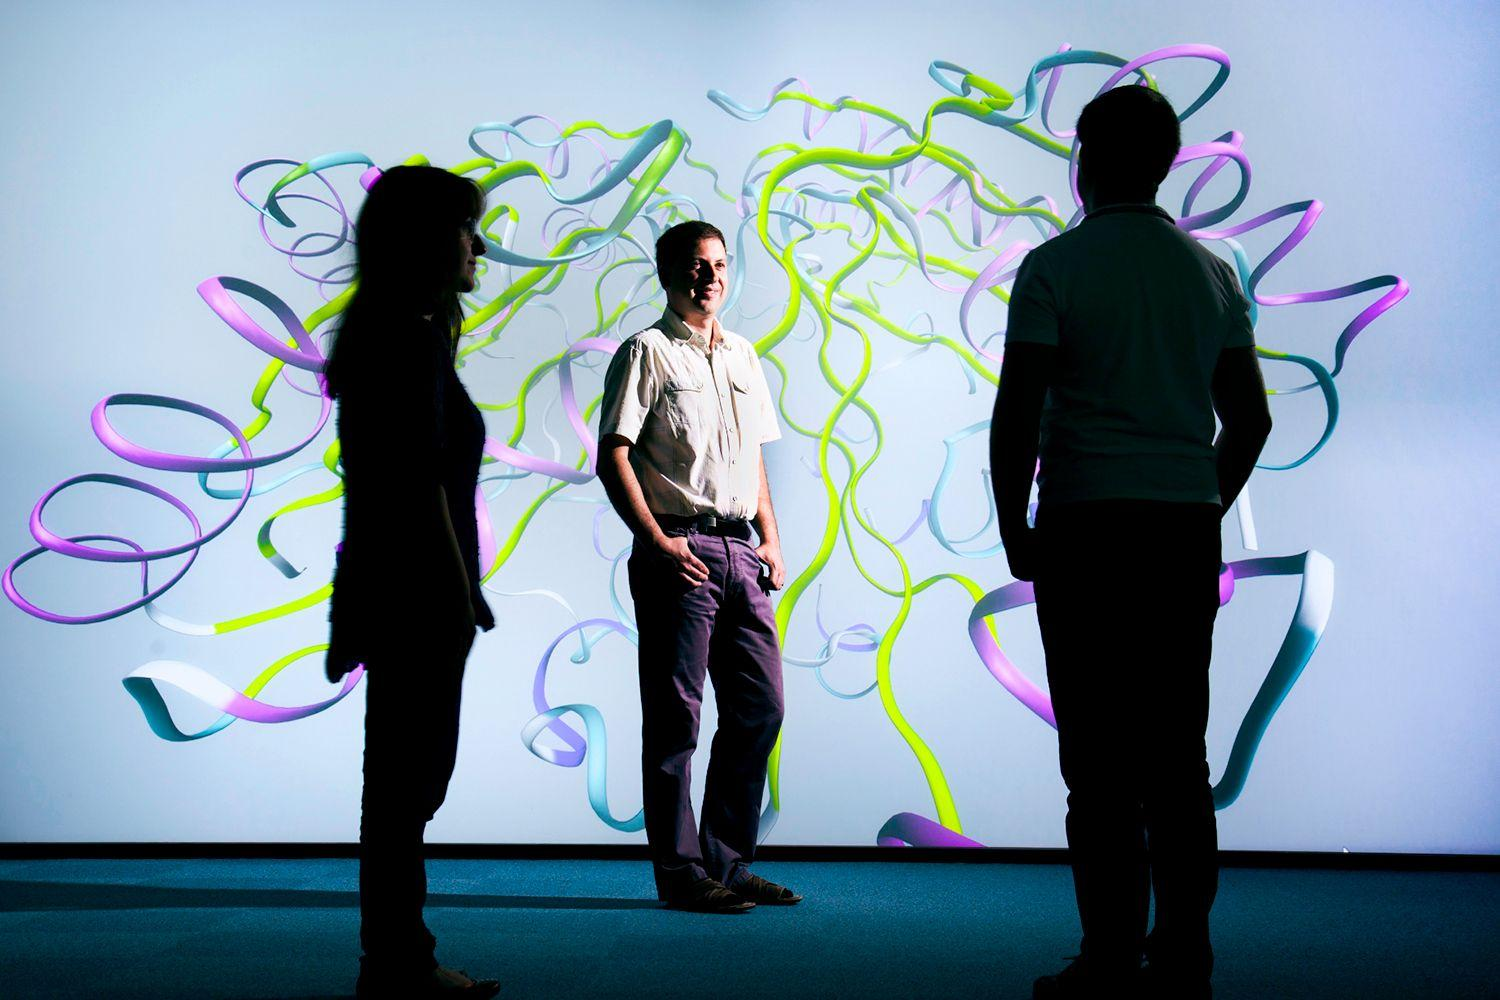 Photograph of the visualisation suite at the Hartree National Centre for Digital Innovation with three people against a backdrop of full screen wall with a ribbon diagram of a molecular structure